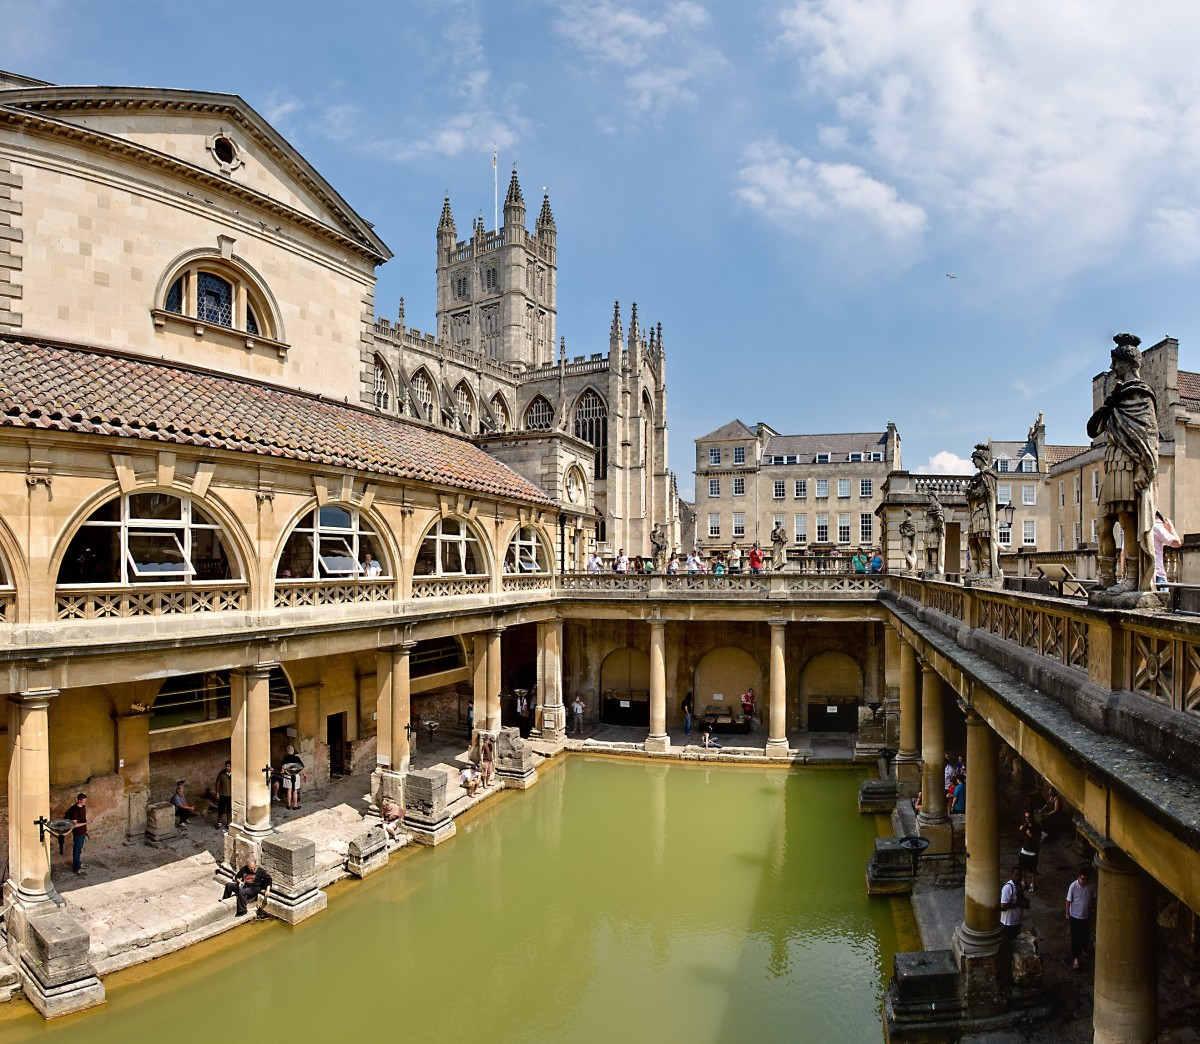 The Great Bath in the city of Bath, England; the bath, the light grey base of the surrounding pillars, and the passageway date from Ancient Roman times